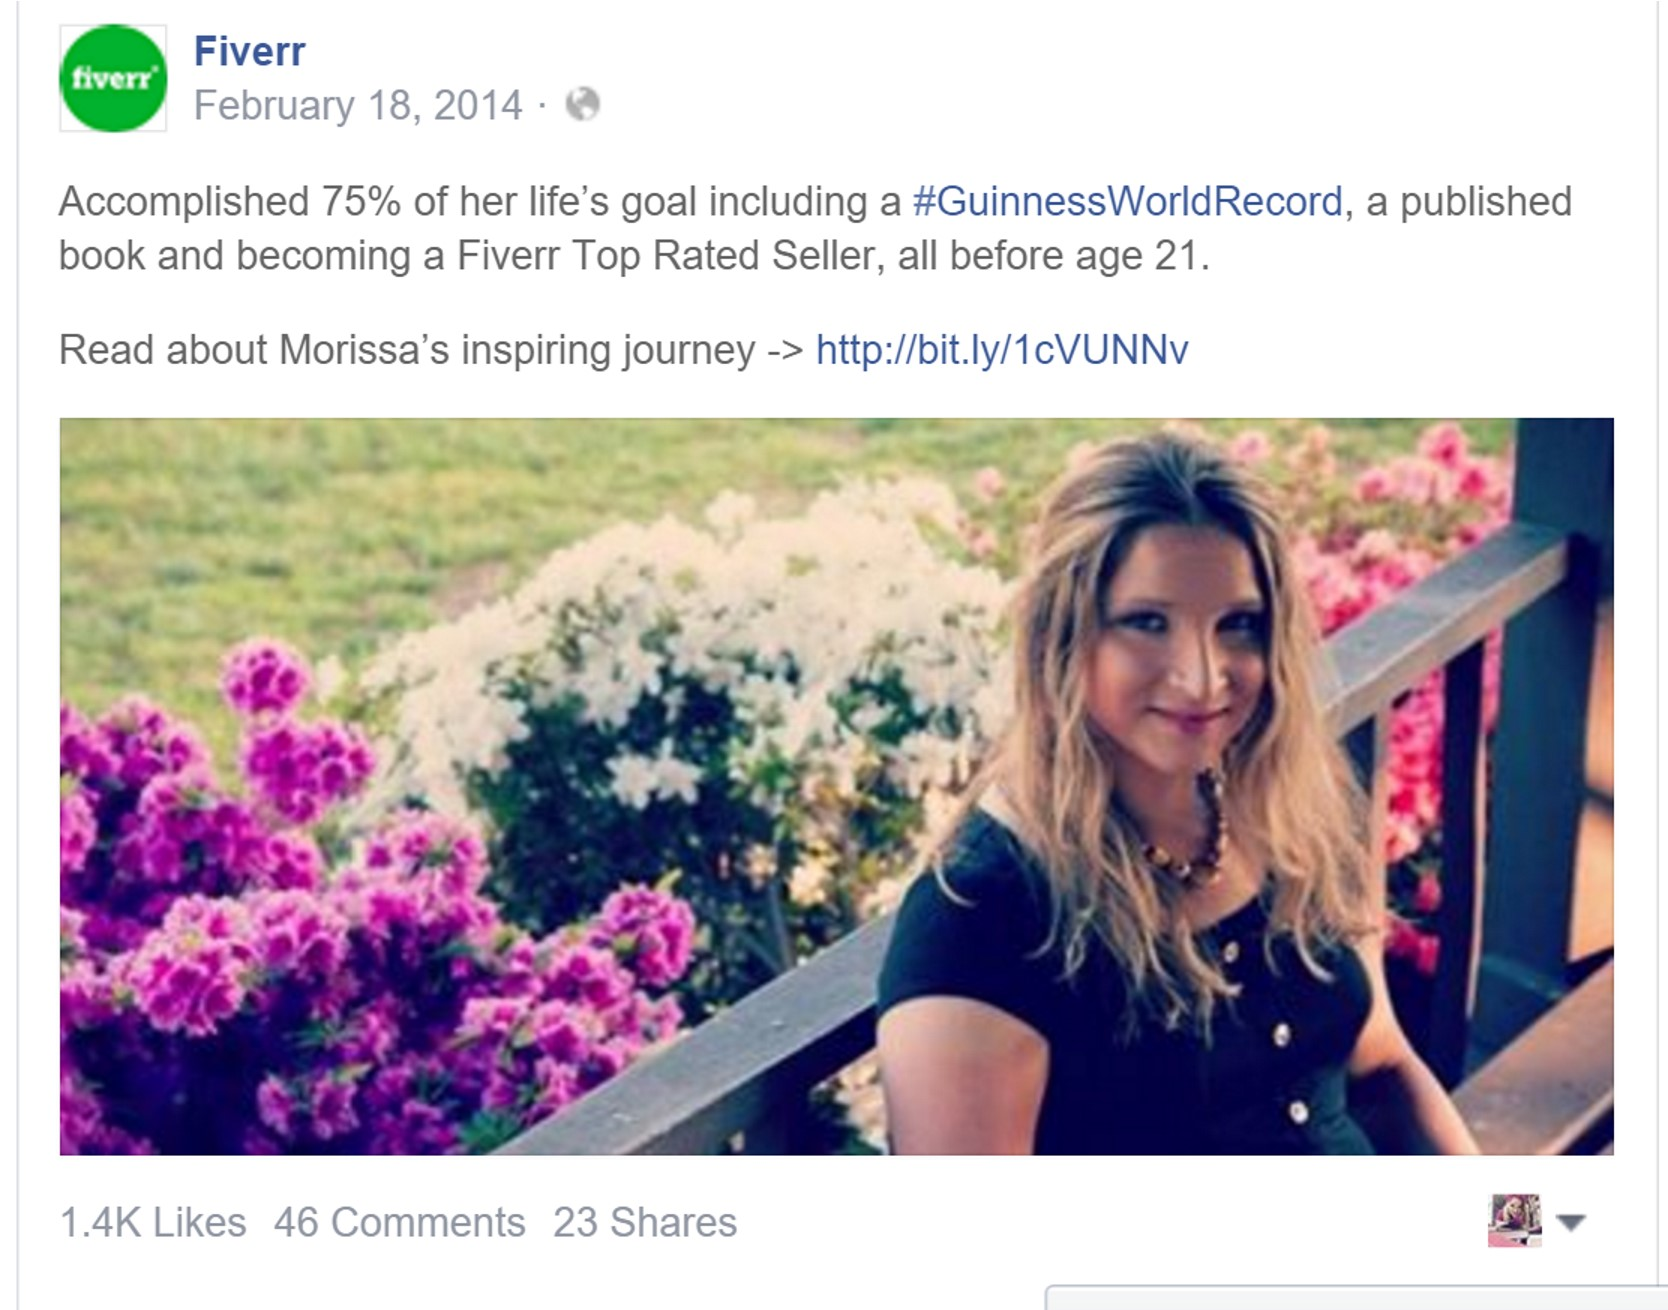 how to get featured on fiverr